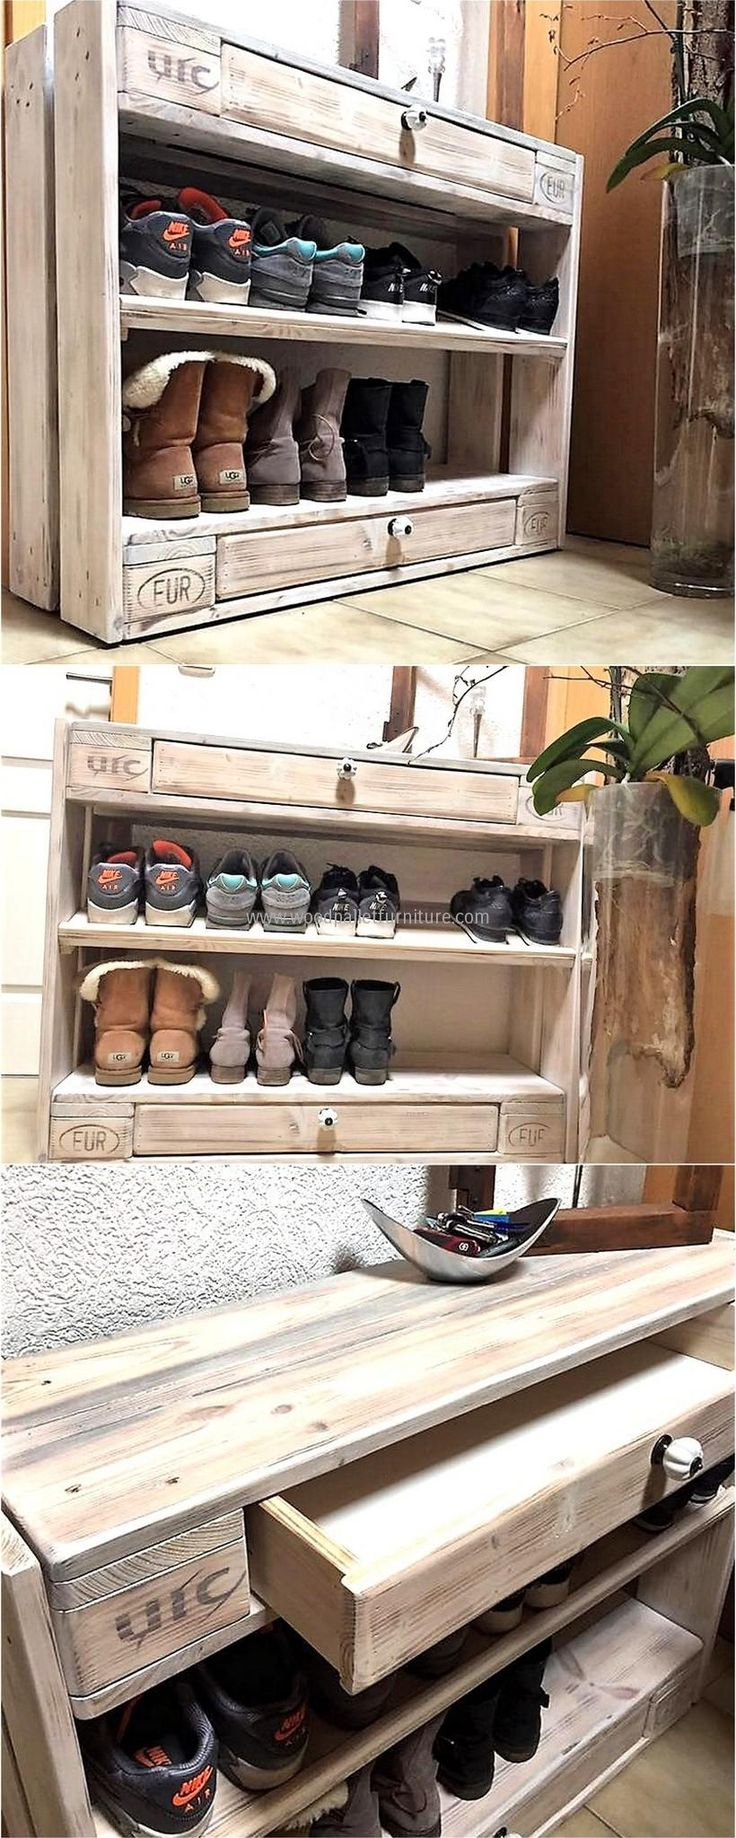 Wood pallet shoe rack with storage drawers. Love ❤️ this idea.